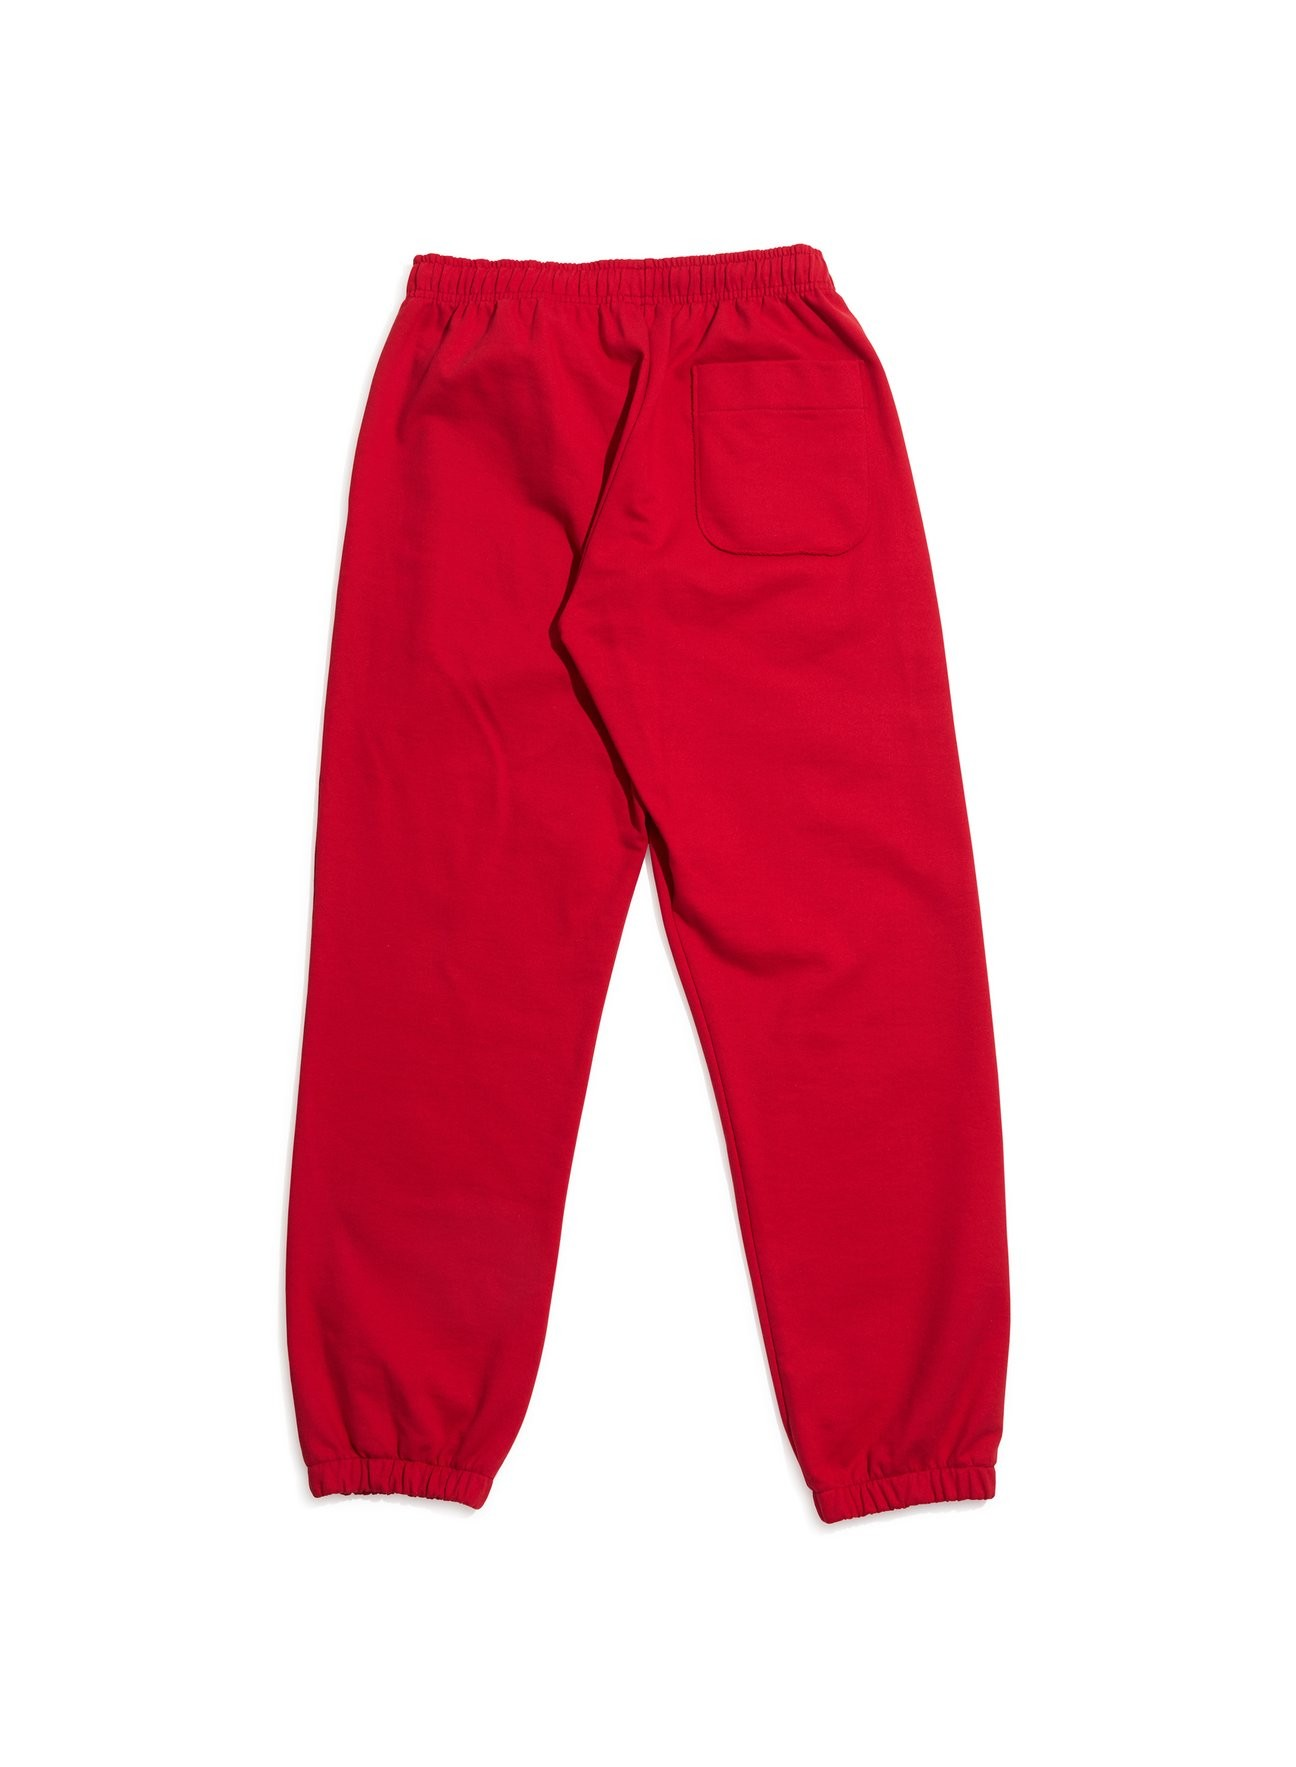 Paccbet Mens Printed Trackpants Red